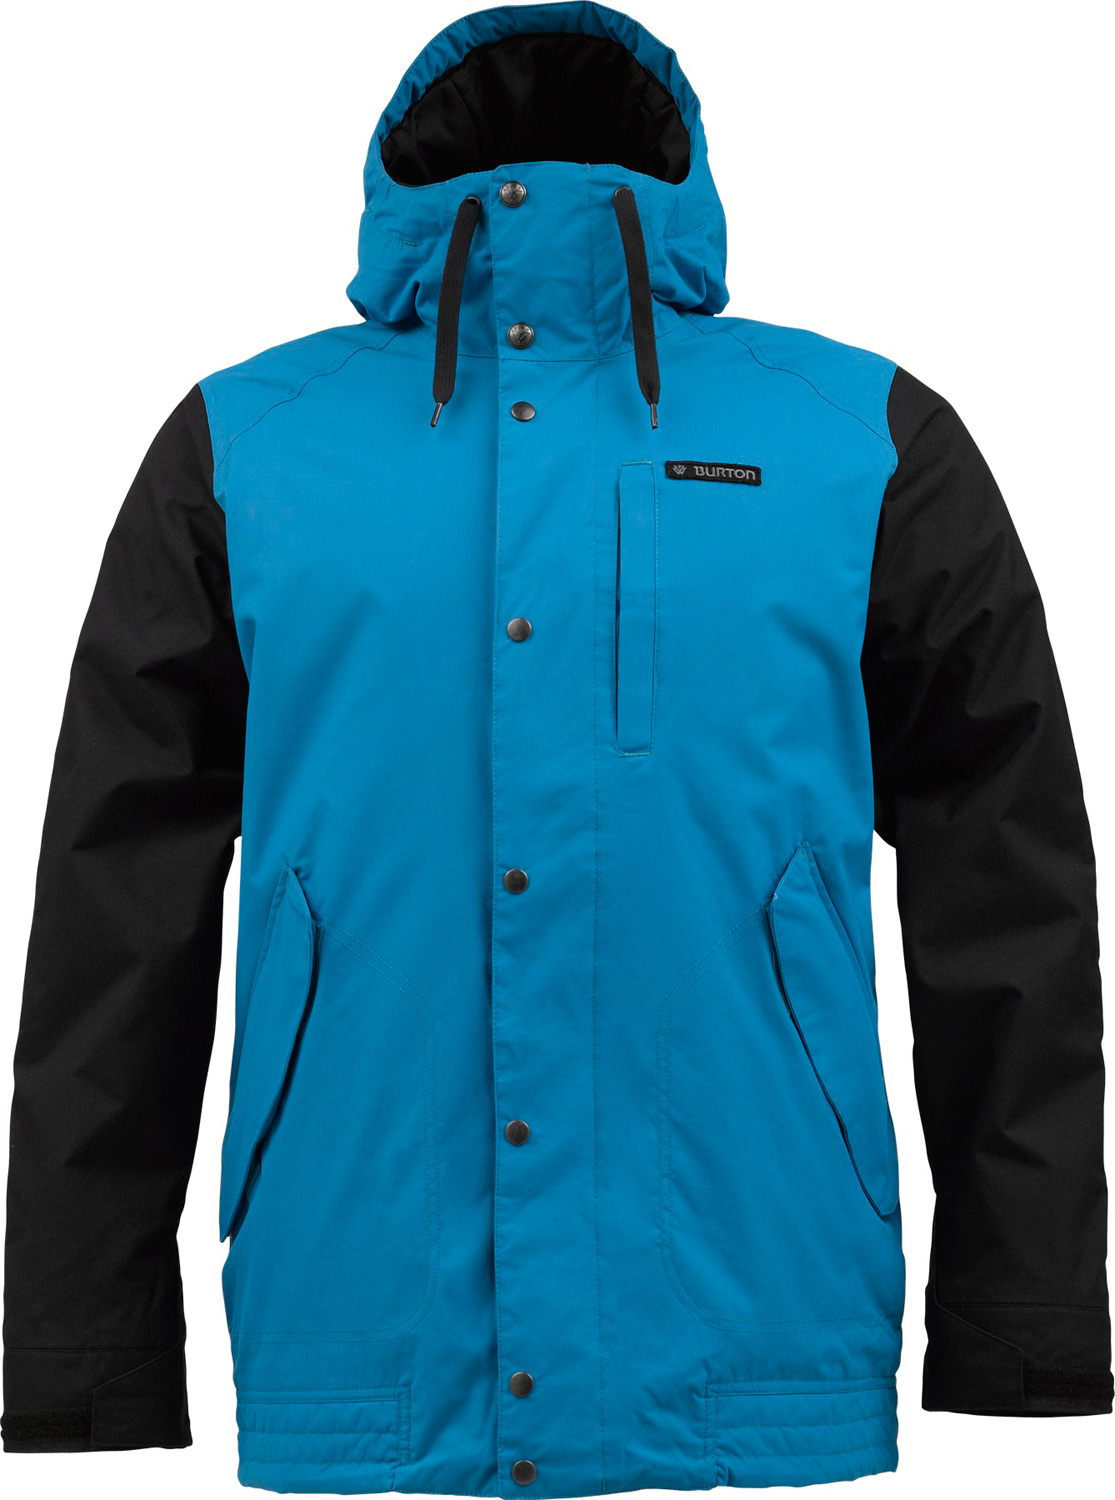 Snowboard No need to shoplift, it's a steal. Podium-grade performance at a ridiculous price.Key Features of the Burton TWC Throttle Snowboard Jacket: 10,000mm Waterproof 10,000g Breathability Sig Fit Waterproofing: DRYRIDE Durashell™ 2-layer Fabric Warmth: mapped with thermacore™ insulation [60G Body / 40G Sleeves] and taffeta lining Mesh-lined Pit Zips™ critically taped Seams Fulltime hood Magic Stitch waist Gaiter with Jacket-to-Pant interface includes Men's the white collection Jacket Features Package DRYRIDE Fabrication with DWR Coating Pit Zips™ Zippered, Microfleece-Lined Handwarmer Pockets Articulated Sleeves Hood Cinch Adjustable Cuff Closures Pass Pocket Pocket Key Clip Waist Gaiter with Jacket-to-Pant Interface Pocket Access Hem Cinch Sound Pocket Goggle Pocket - $118.95